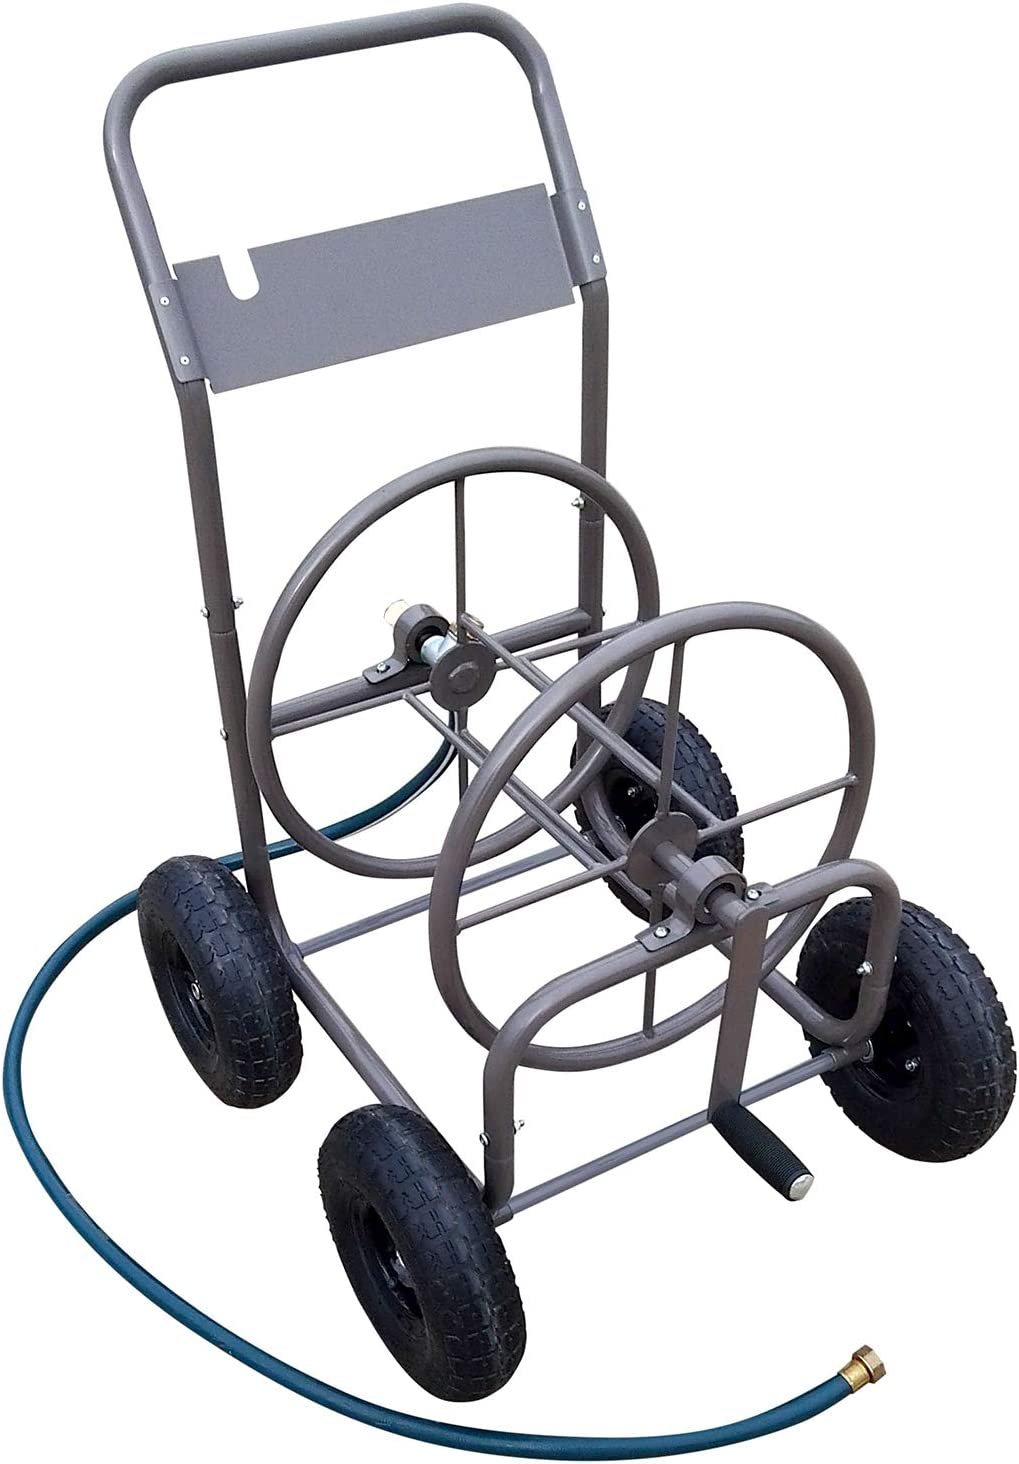 Centurion 658 Metal Hose Reel Cart with Capacity 5/8 Inch x 225 FT Hose, 10 Inches Pneumatic Tires, Includes 5 FT Leading Hose